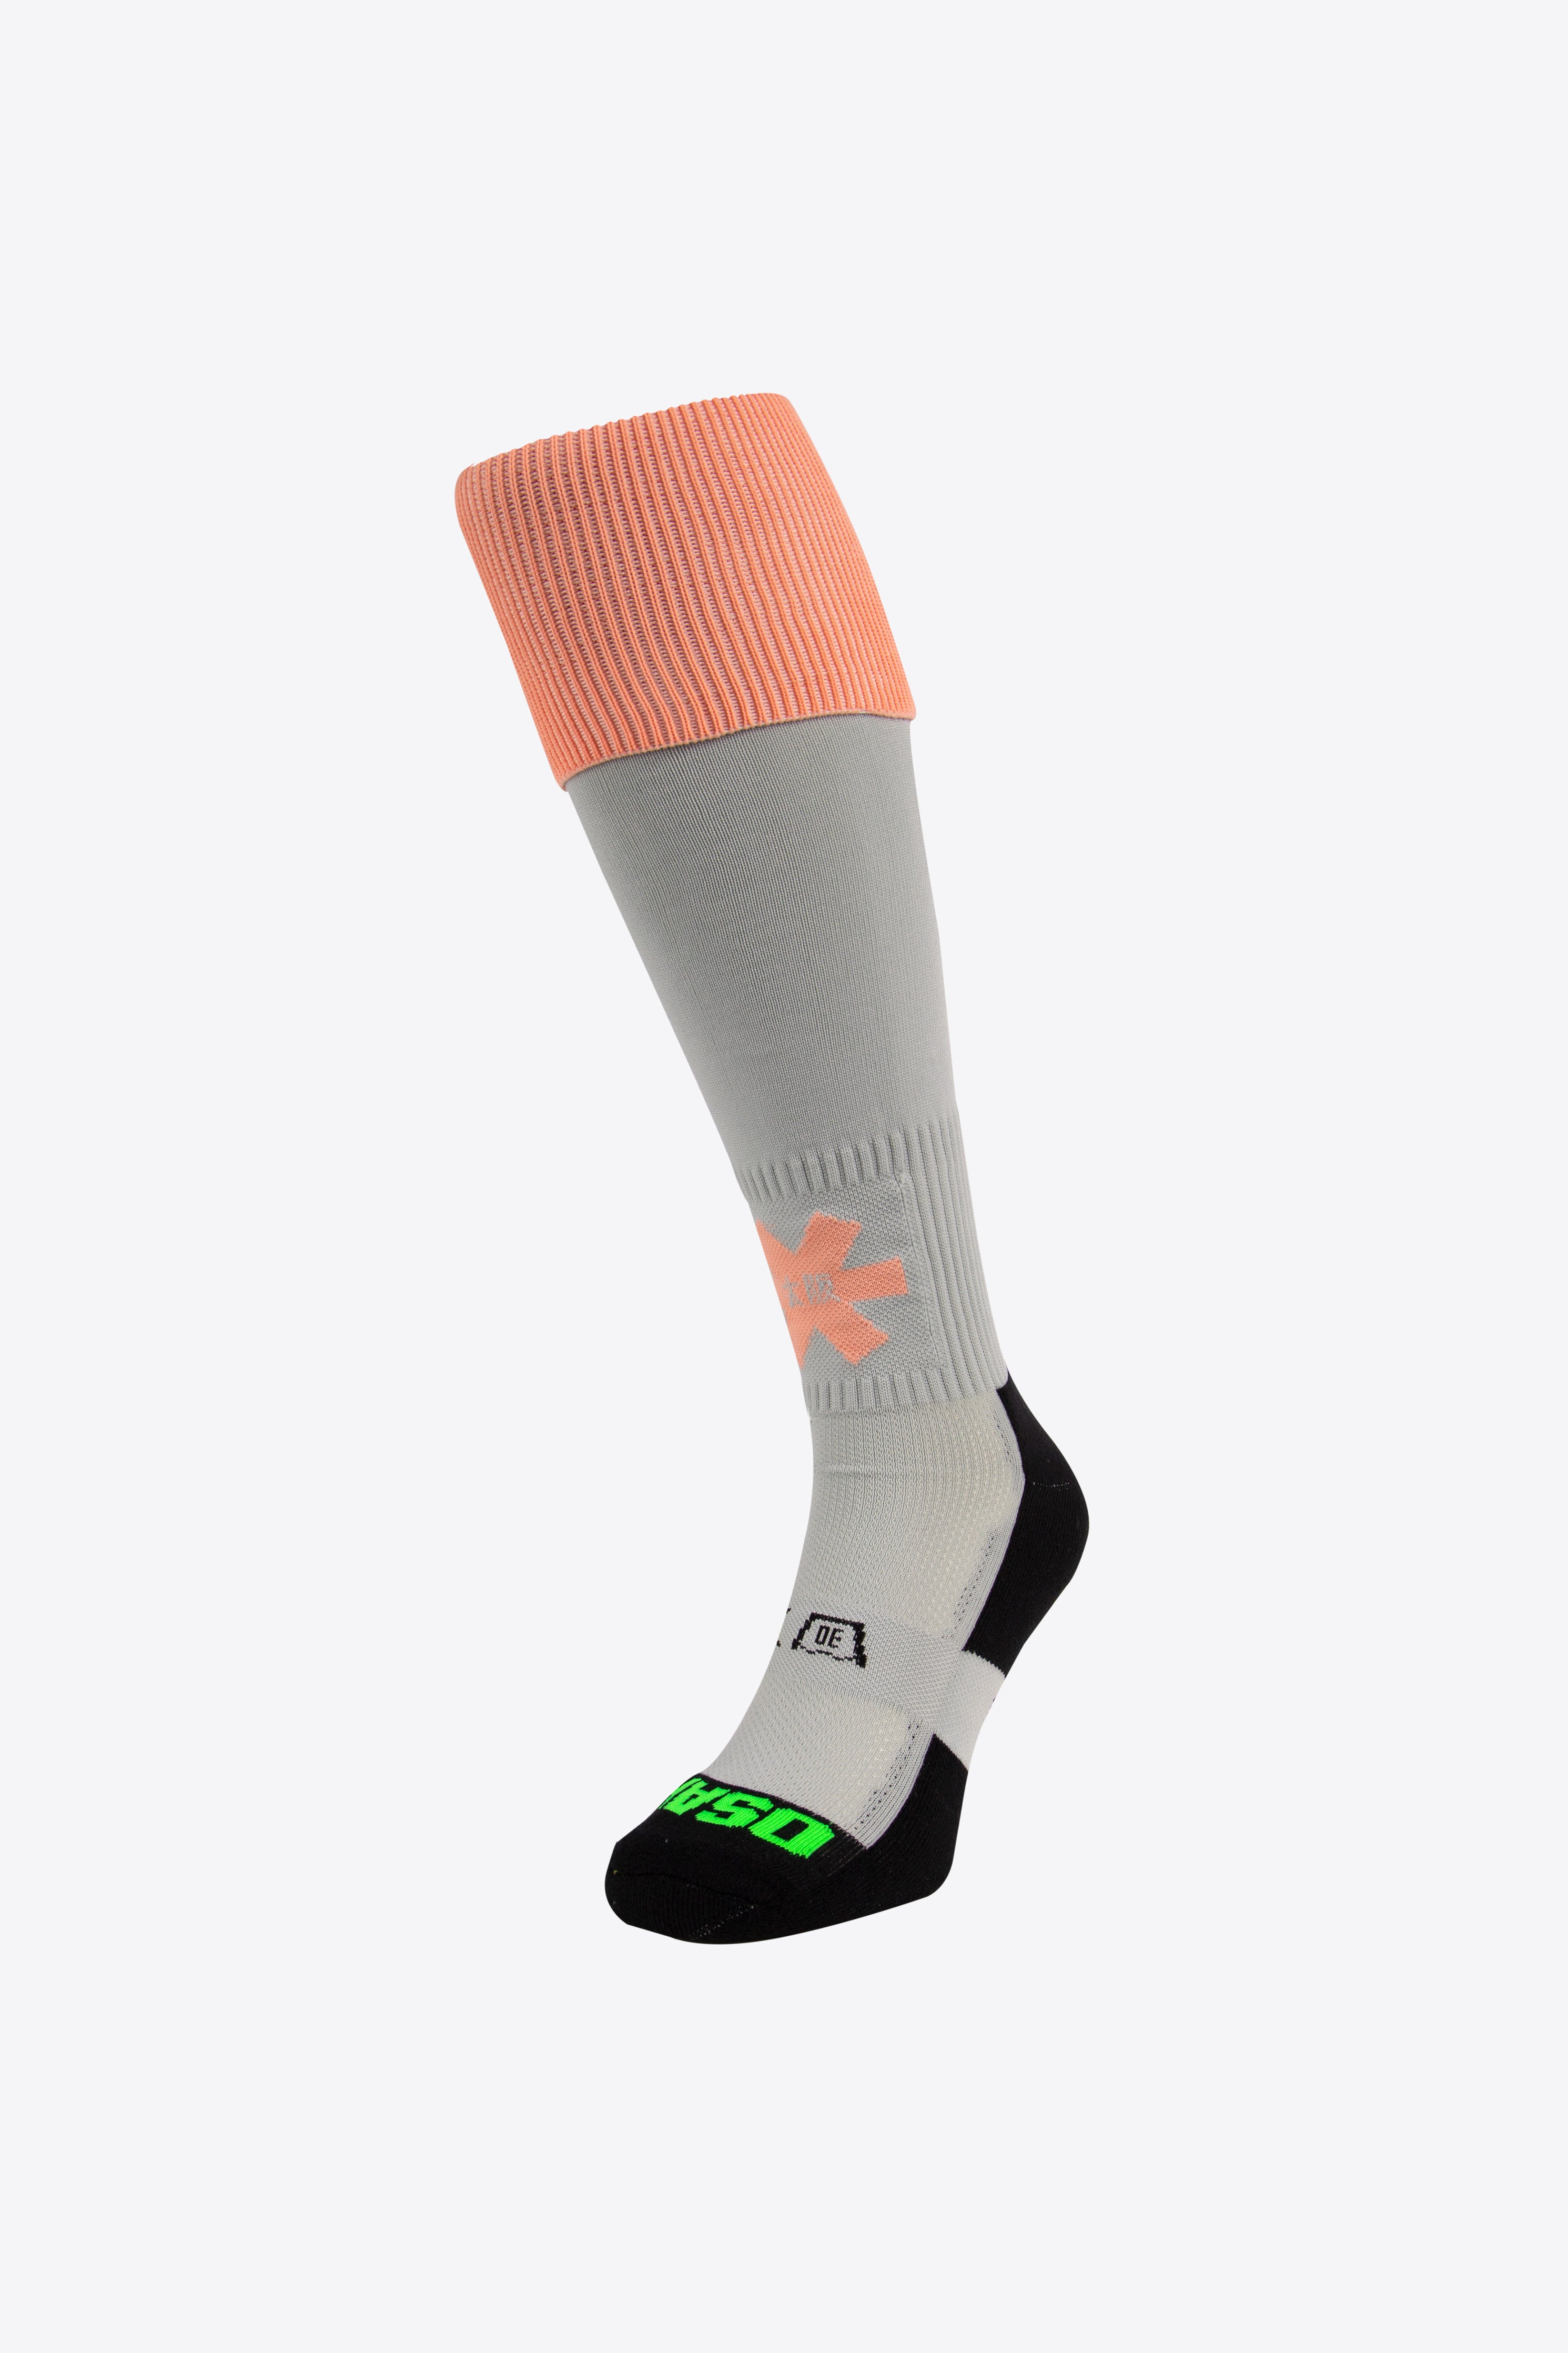 SOX - Cool Grey/Powder Pink